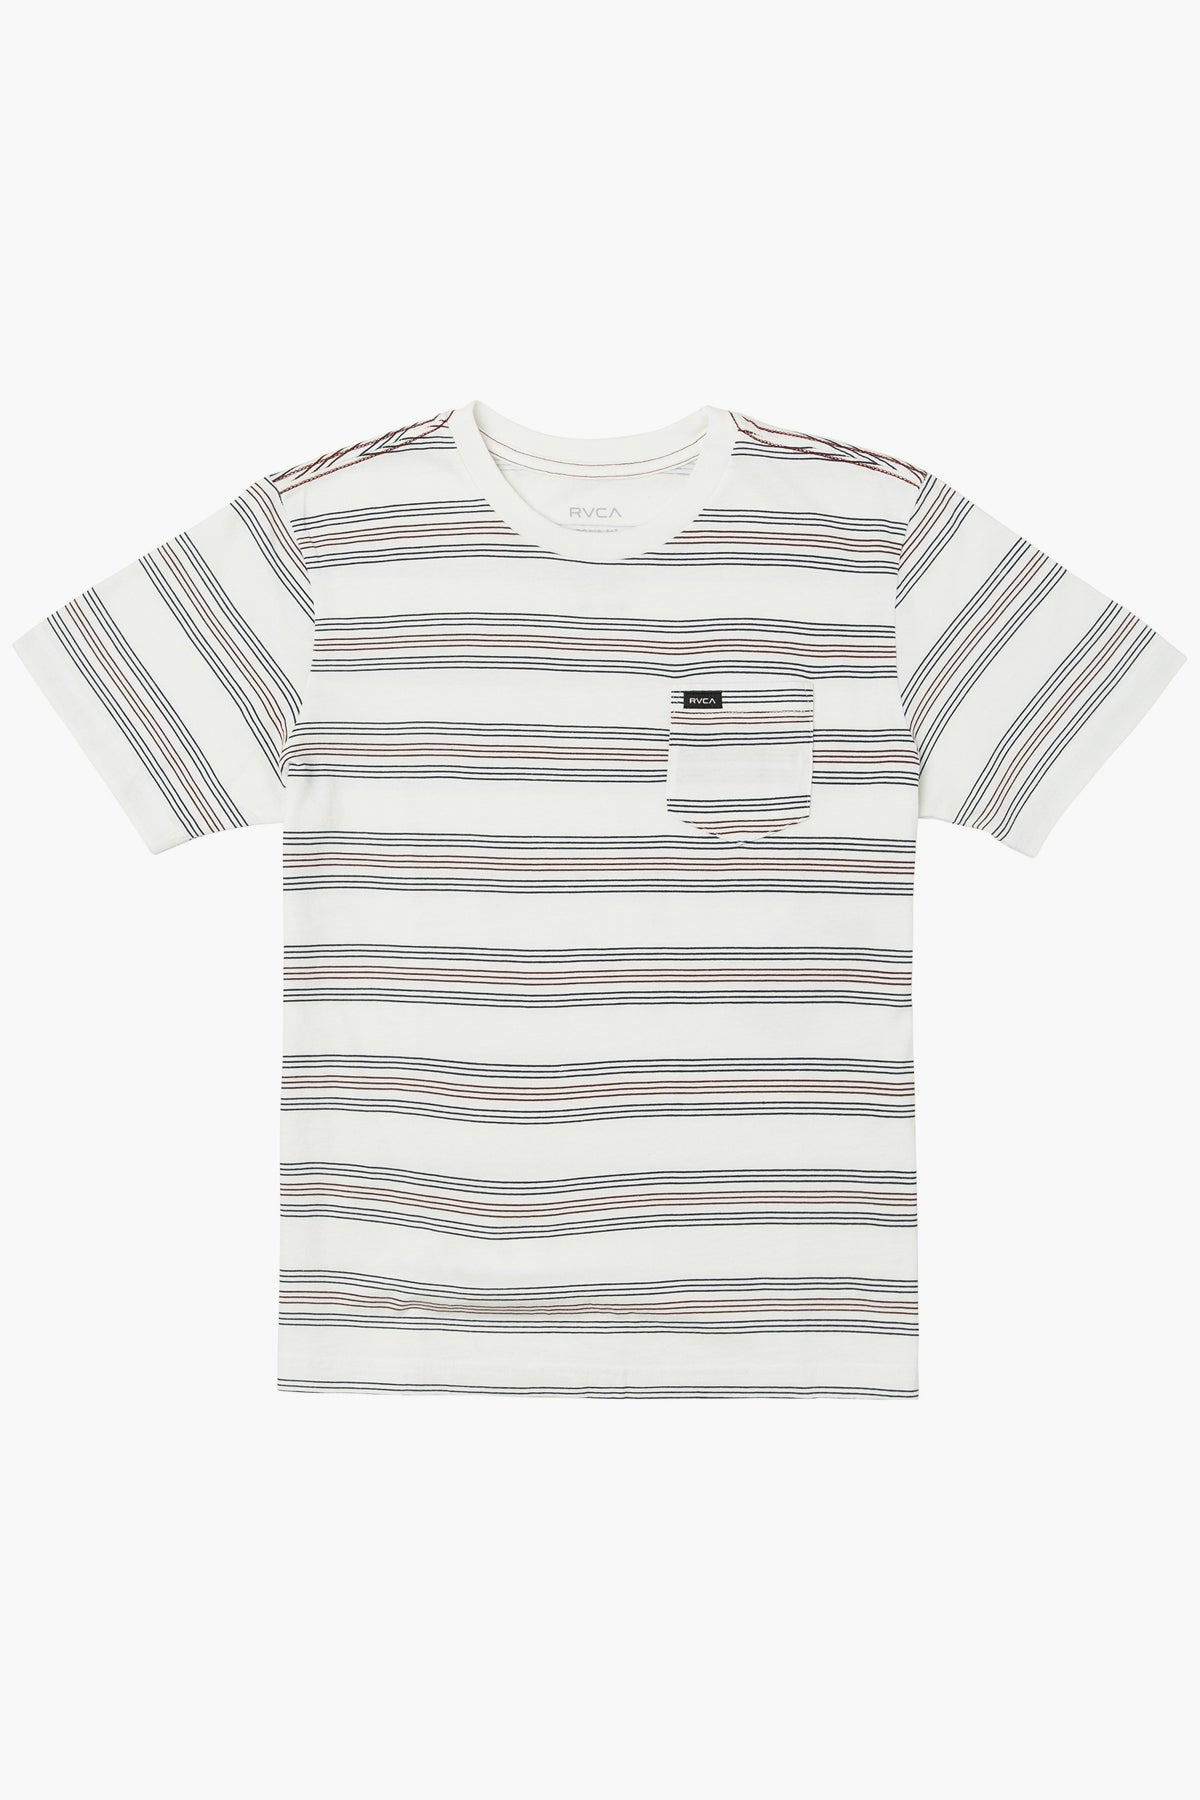 RVCA Straight Edge Boys T-Shirt